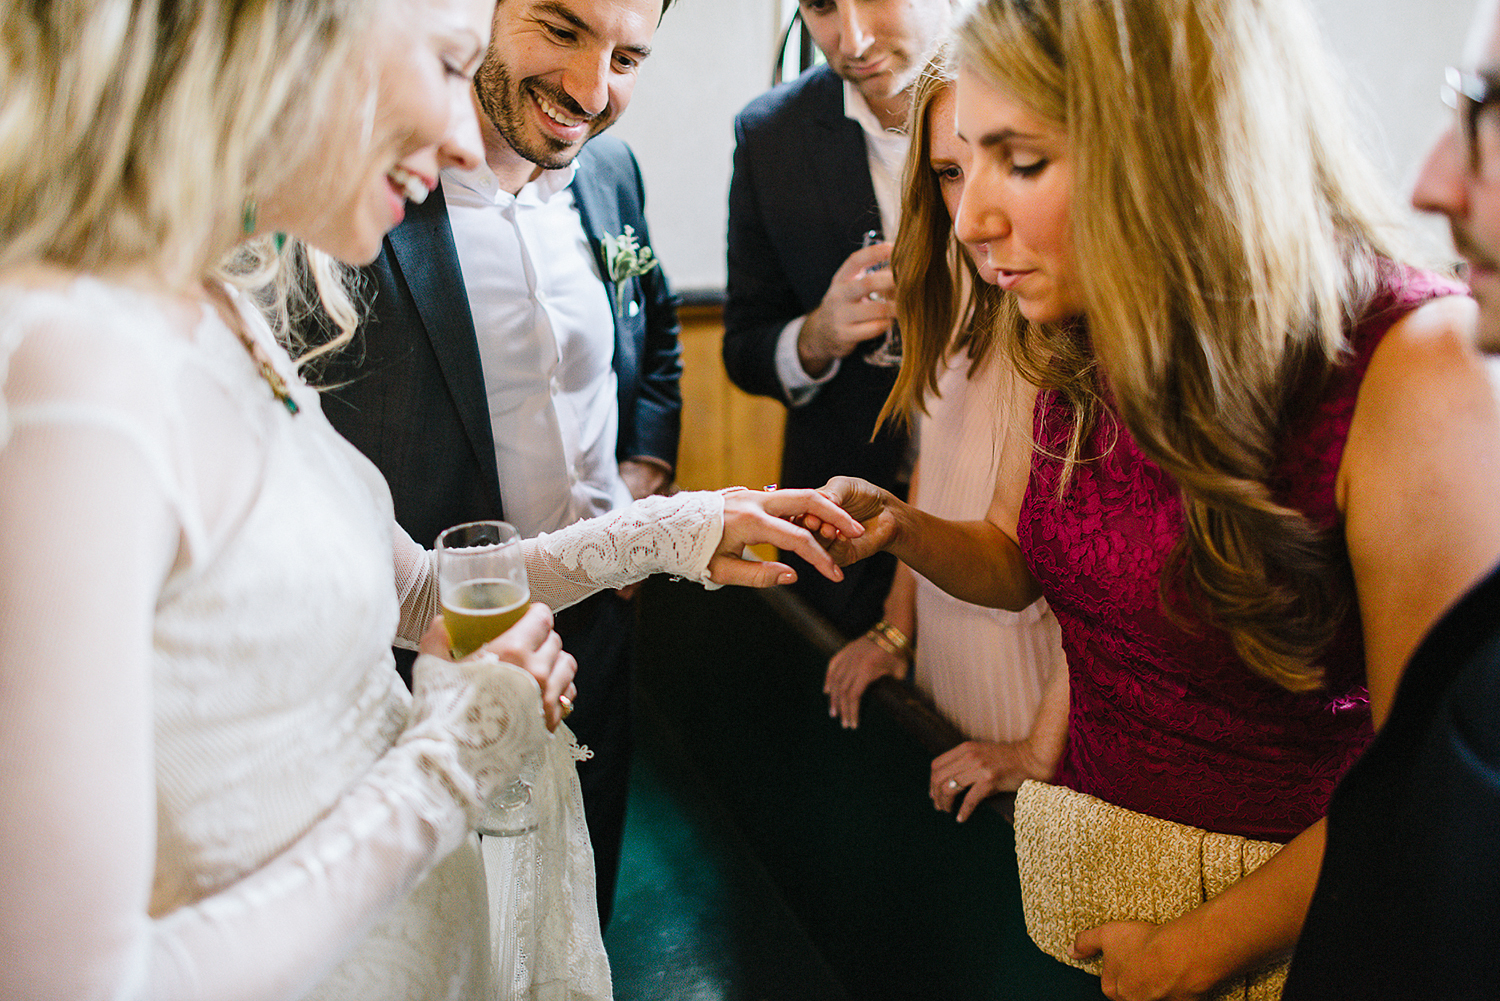 Best-Moody-Documentary-Wedding-Photography-Photojournalism-Vintage-Small-Town-Chapel-Wedding-Toronto-Ontario_Ceremony-Bride-showing-off-ring.jpg